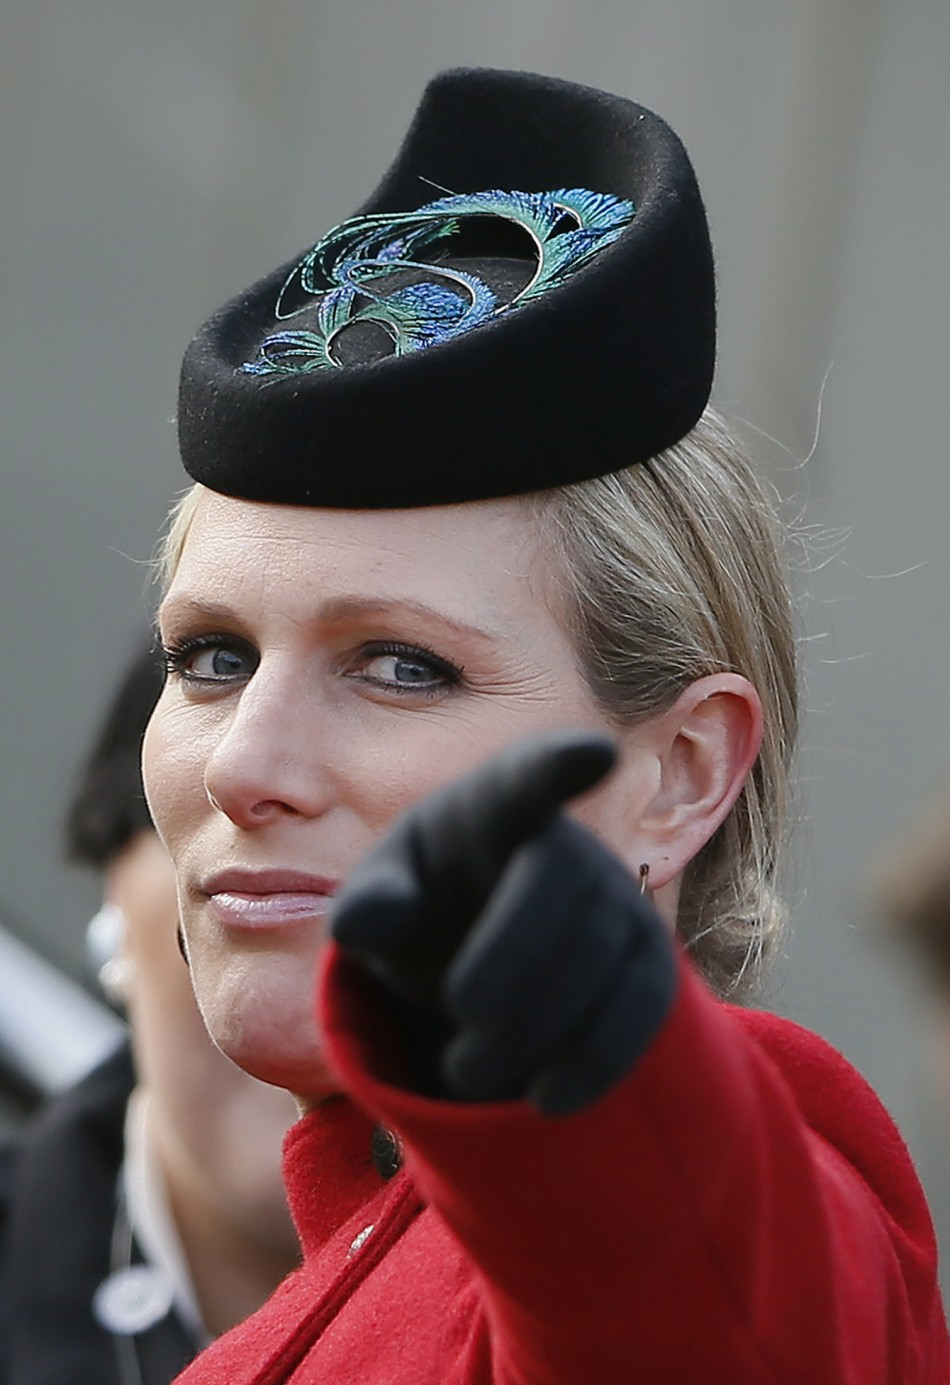 Britains Zara Phillips gestures in the unsaddling enclosure on Ladies Day at the Cheltenham Festival horse racing meet in Gloucestershire, western England, March 13, 2013.